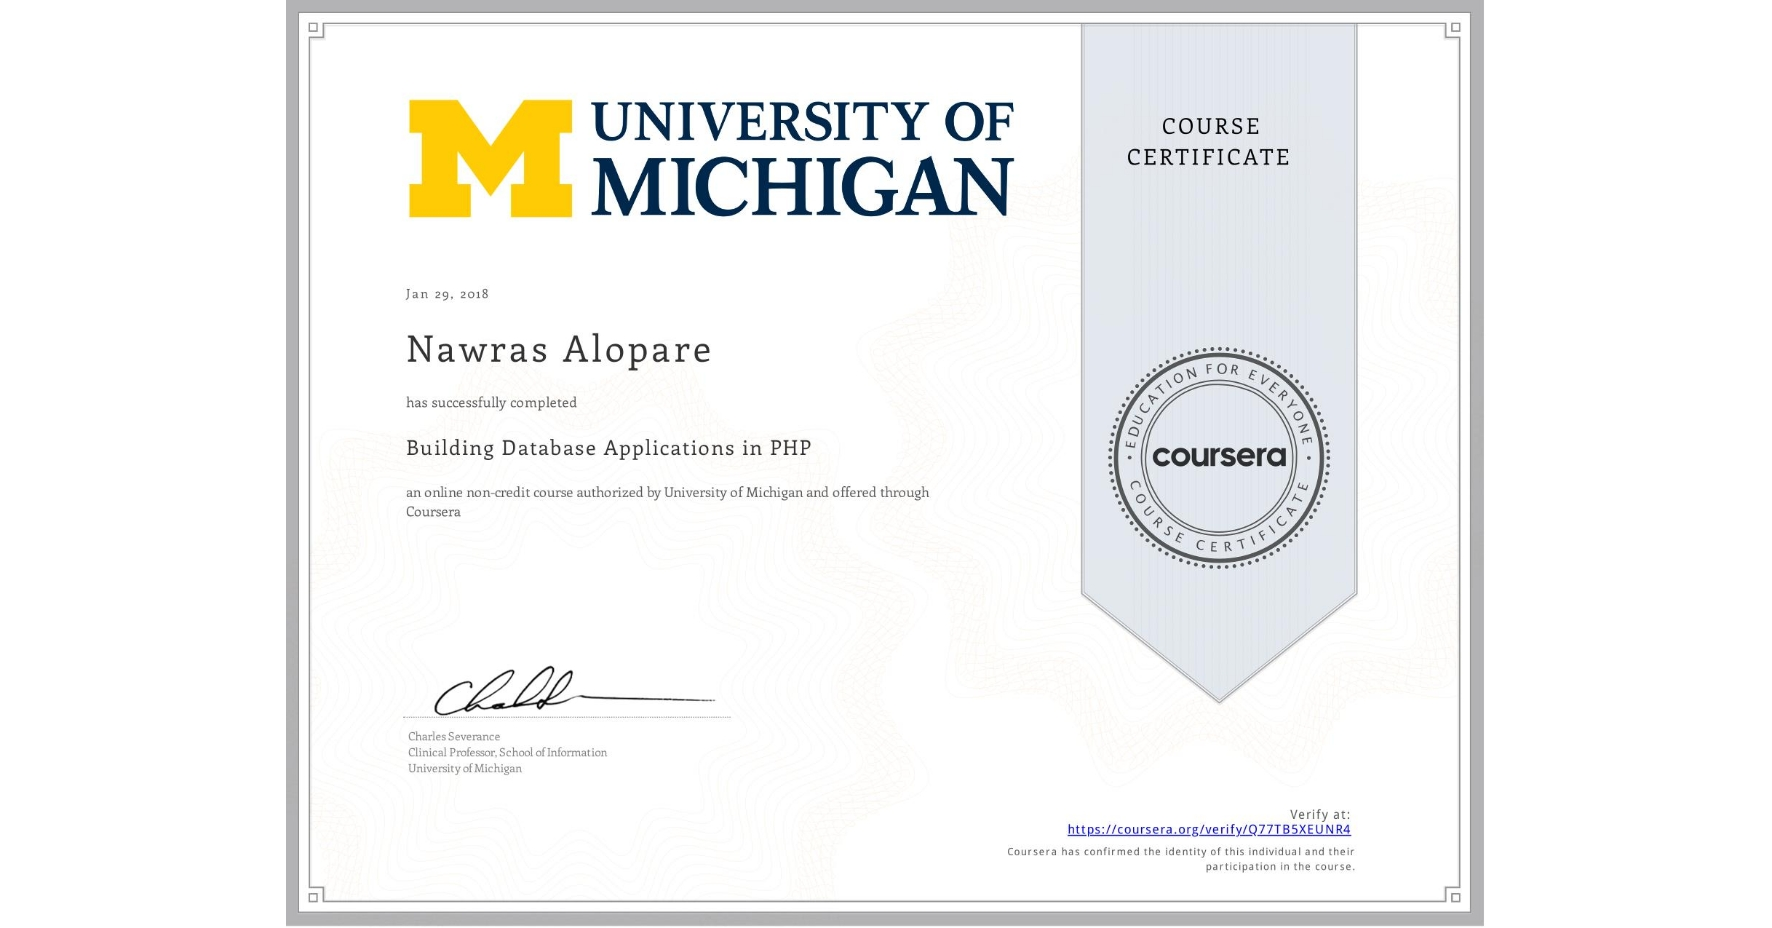 View certificate for Nawras Alopare, Building Database Applications in PHP, an online non-credit course authorized by University of Michigan and offered through Coursera